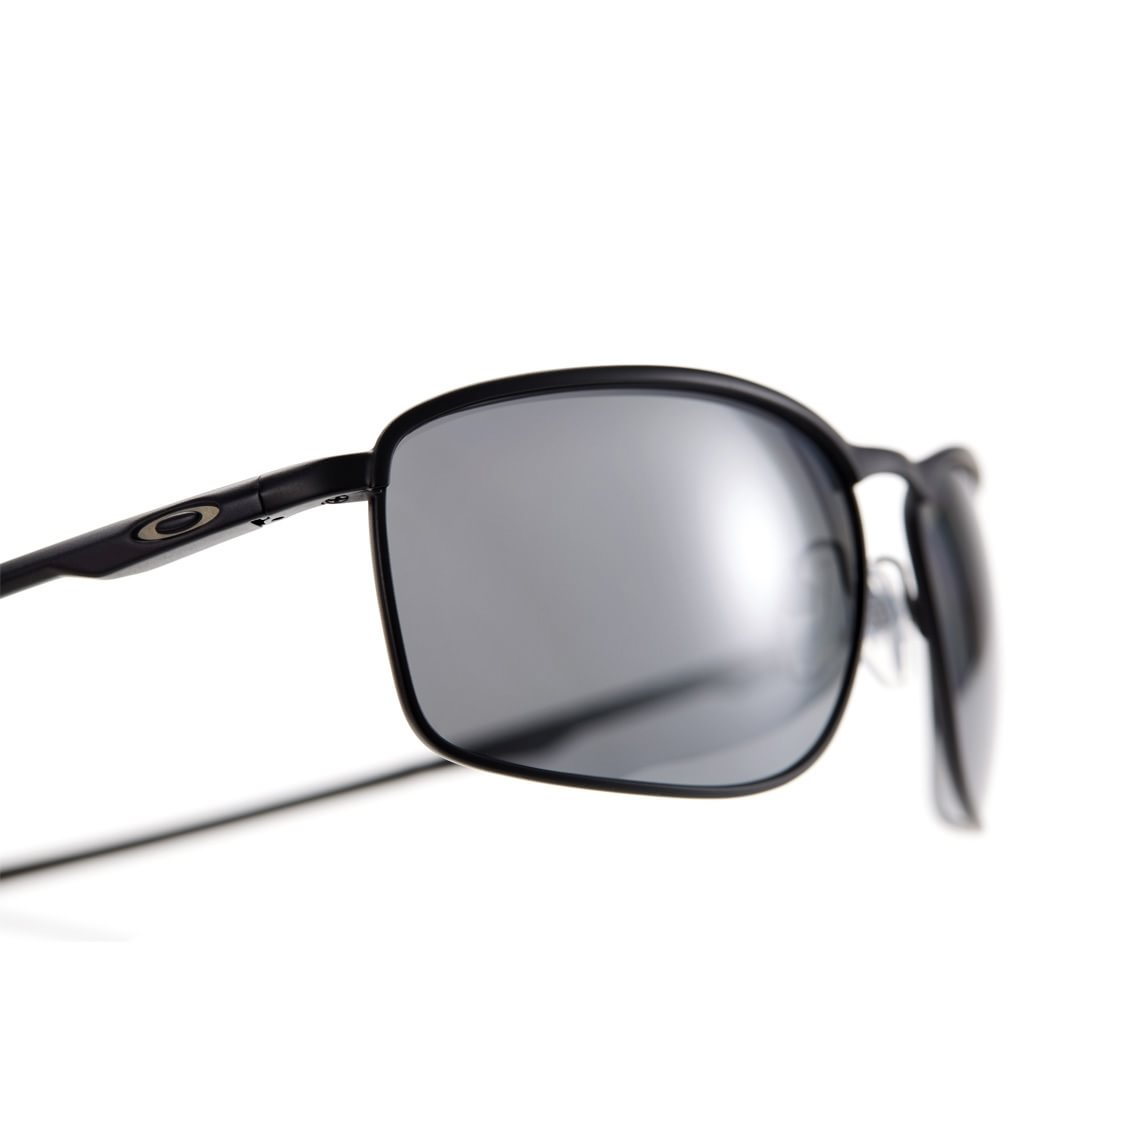 045786cdf5 Oakley Conductor 8 Prescription Sunglasses